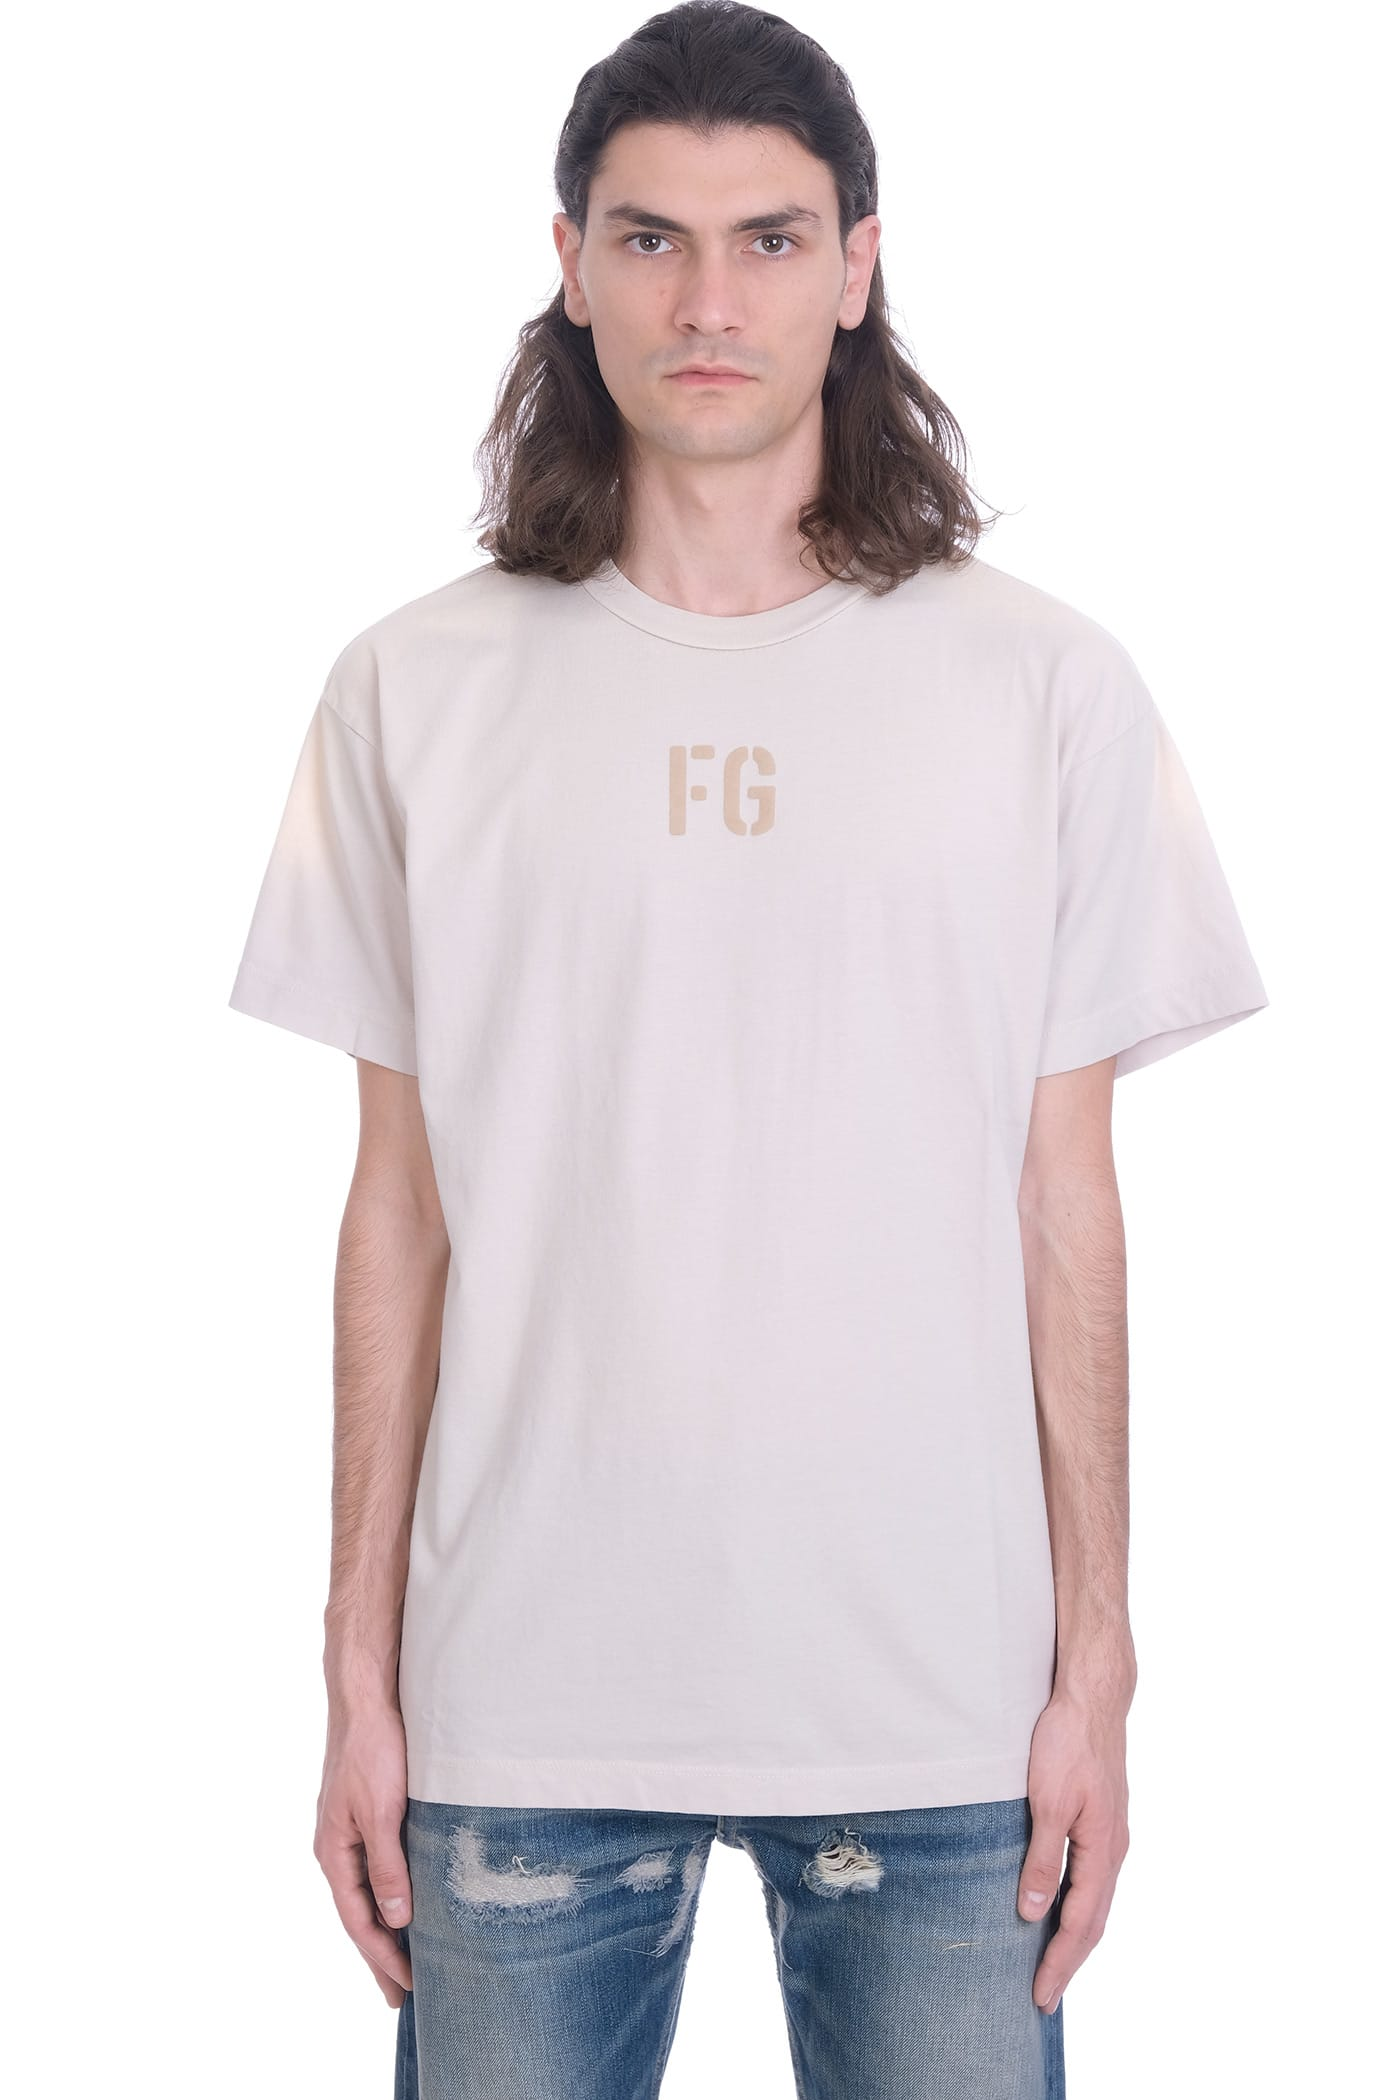 Fear Of God T-shirts T-SHIRT IN WHITE COTTON